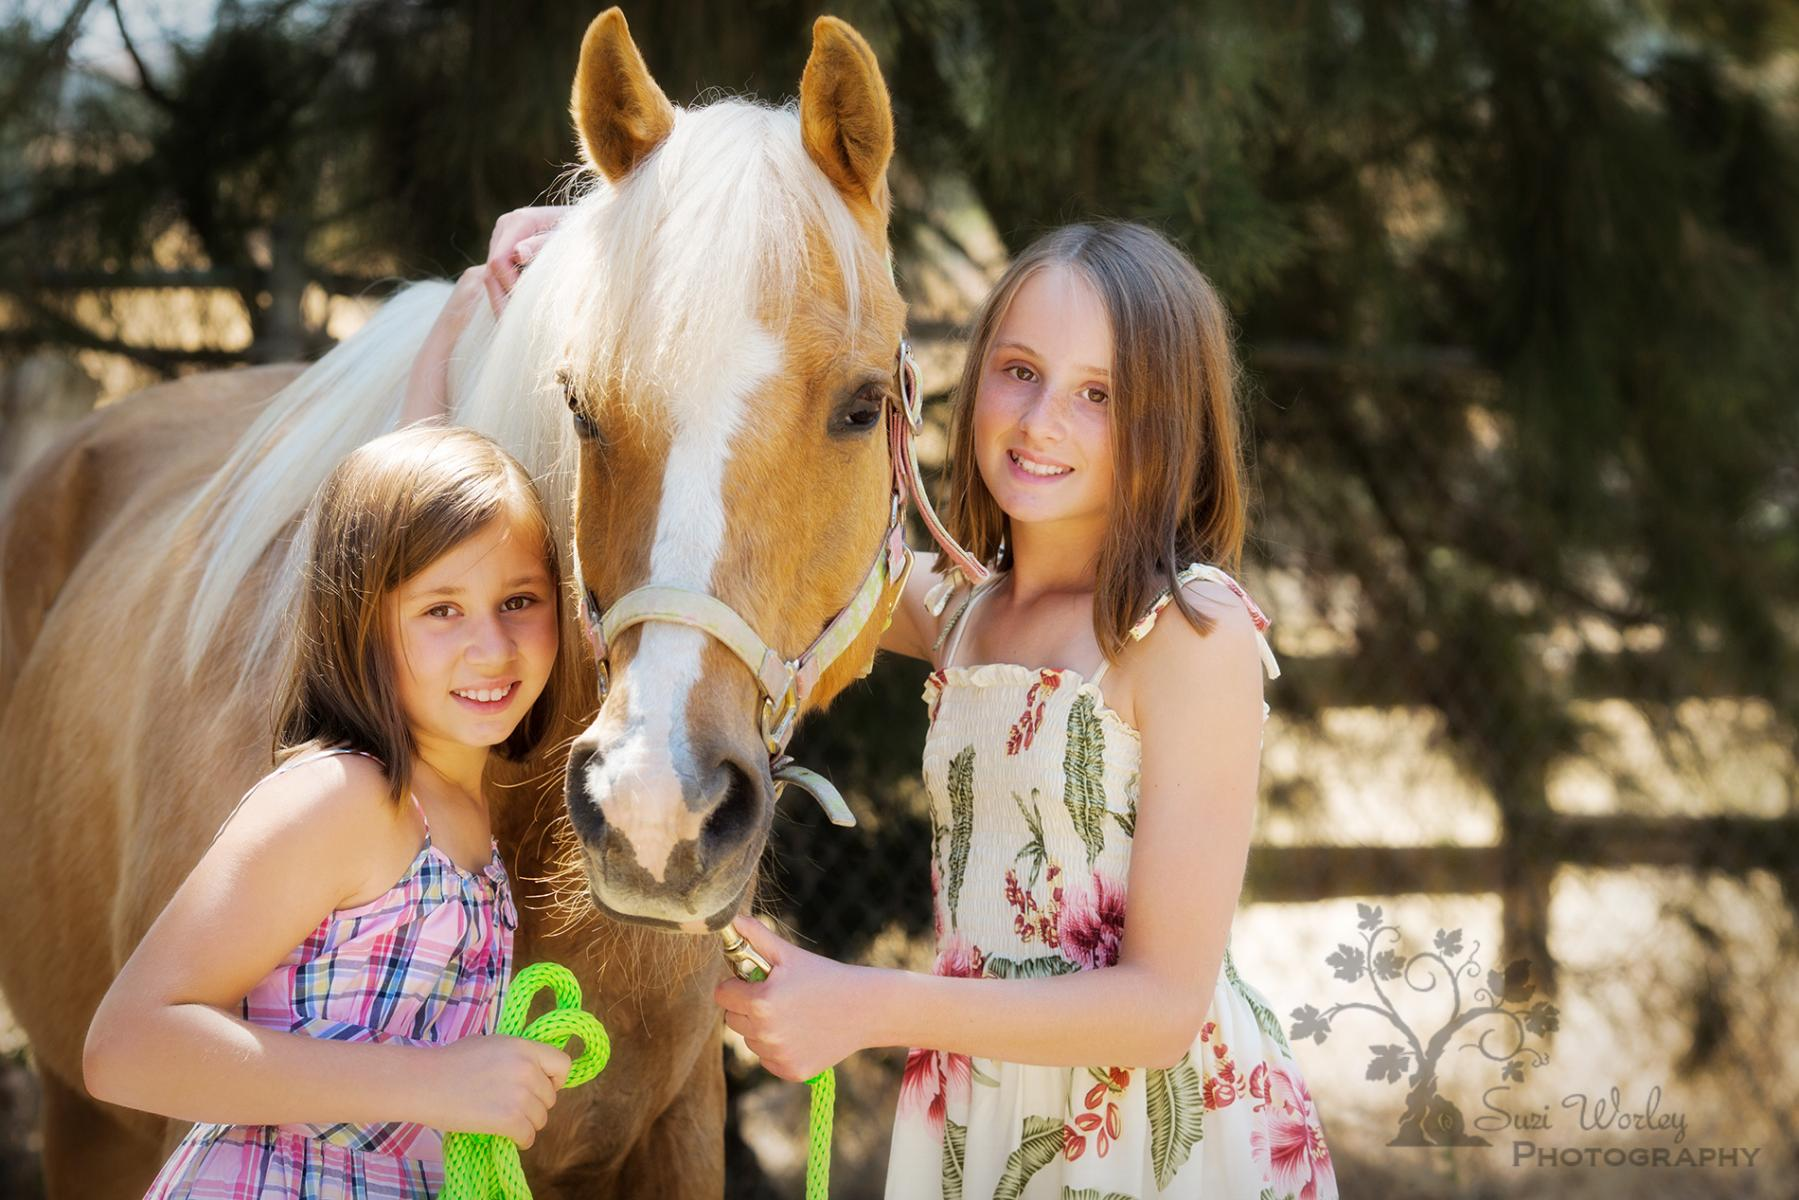 Fun Equestrian image with the girls. #girls #horses #palomino #summersession #SuziWorleyPhotography